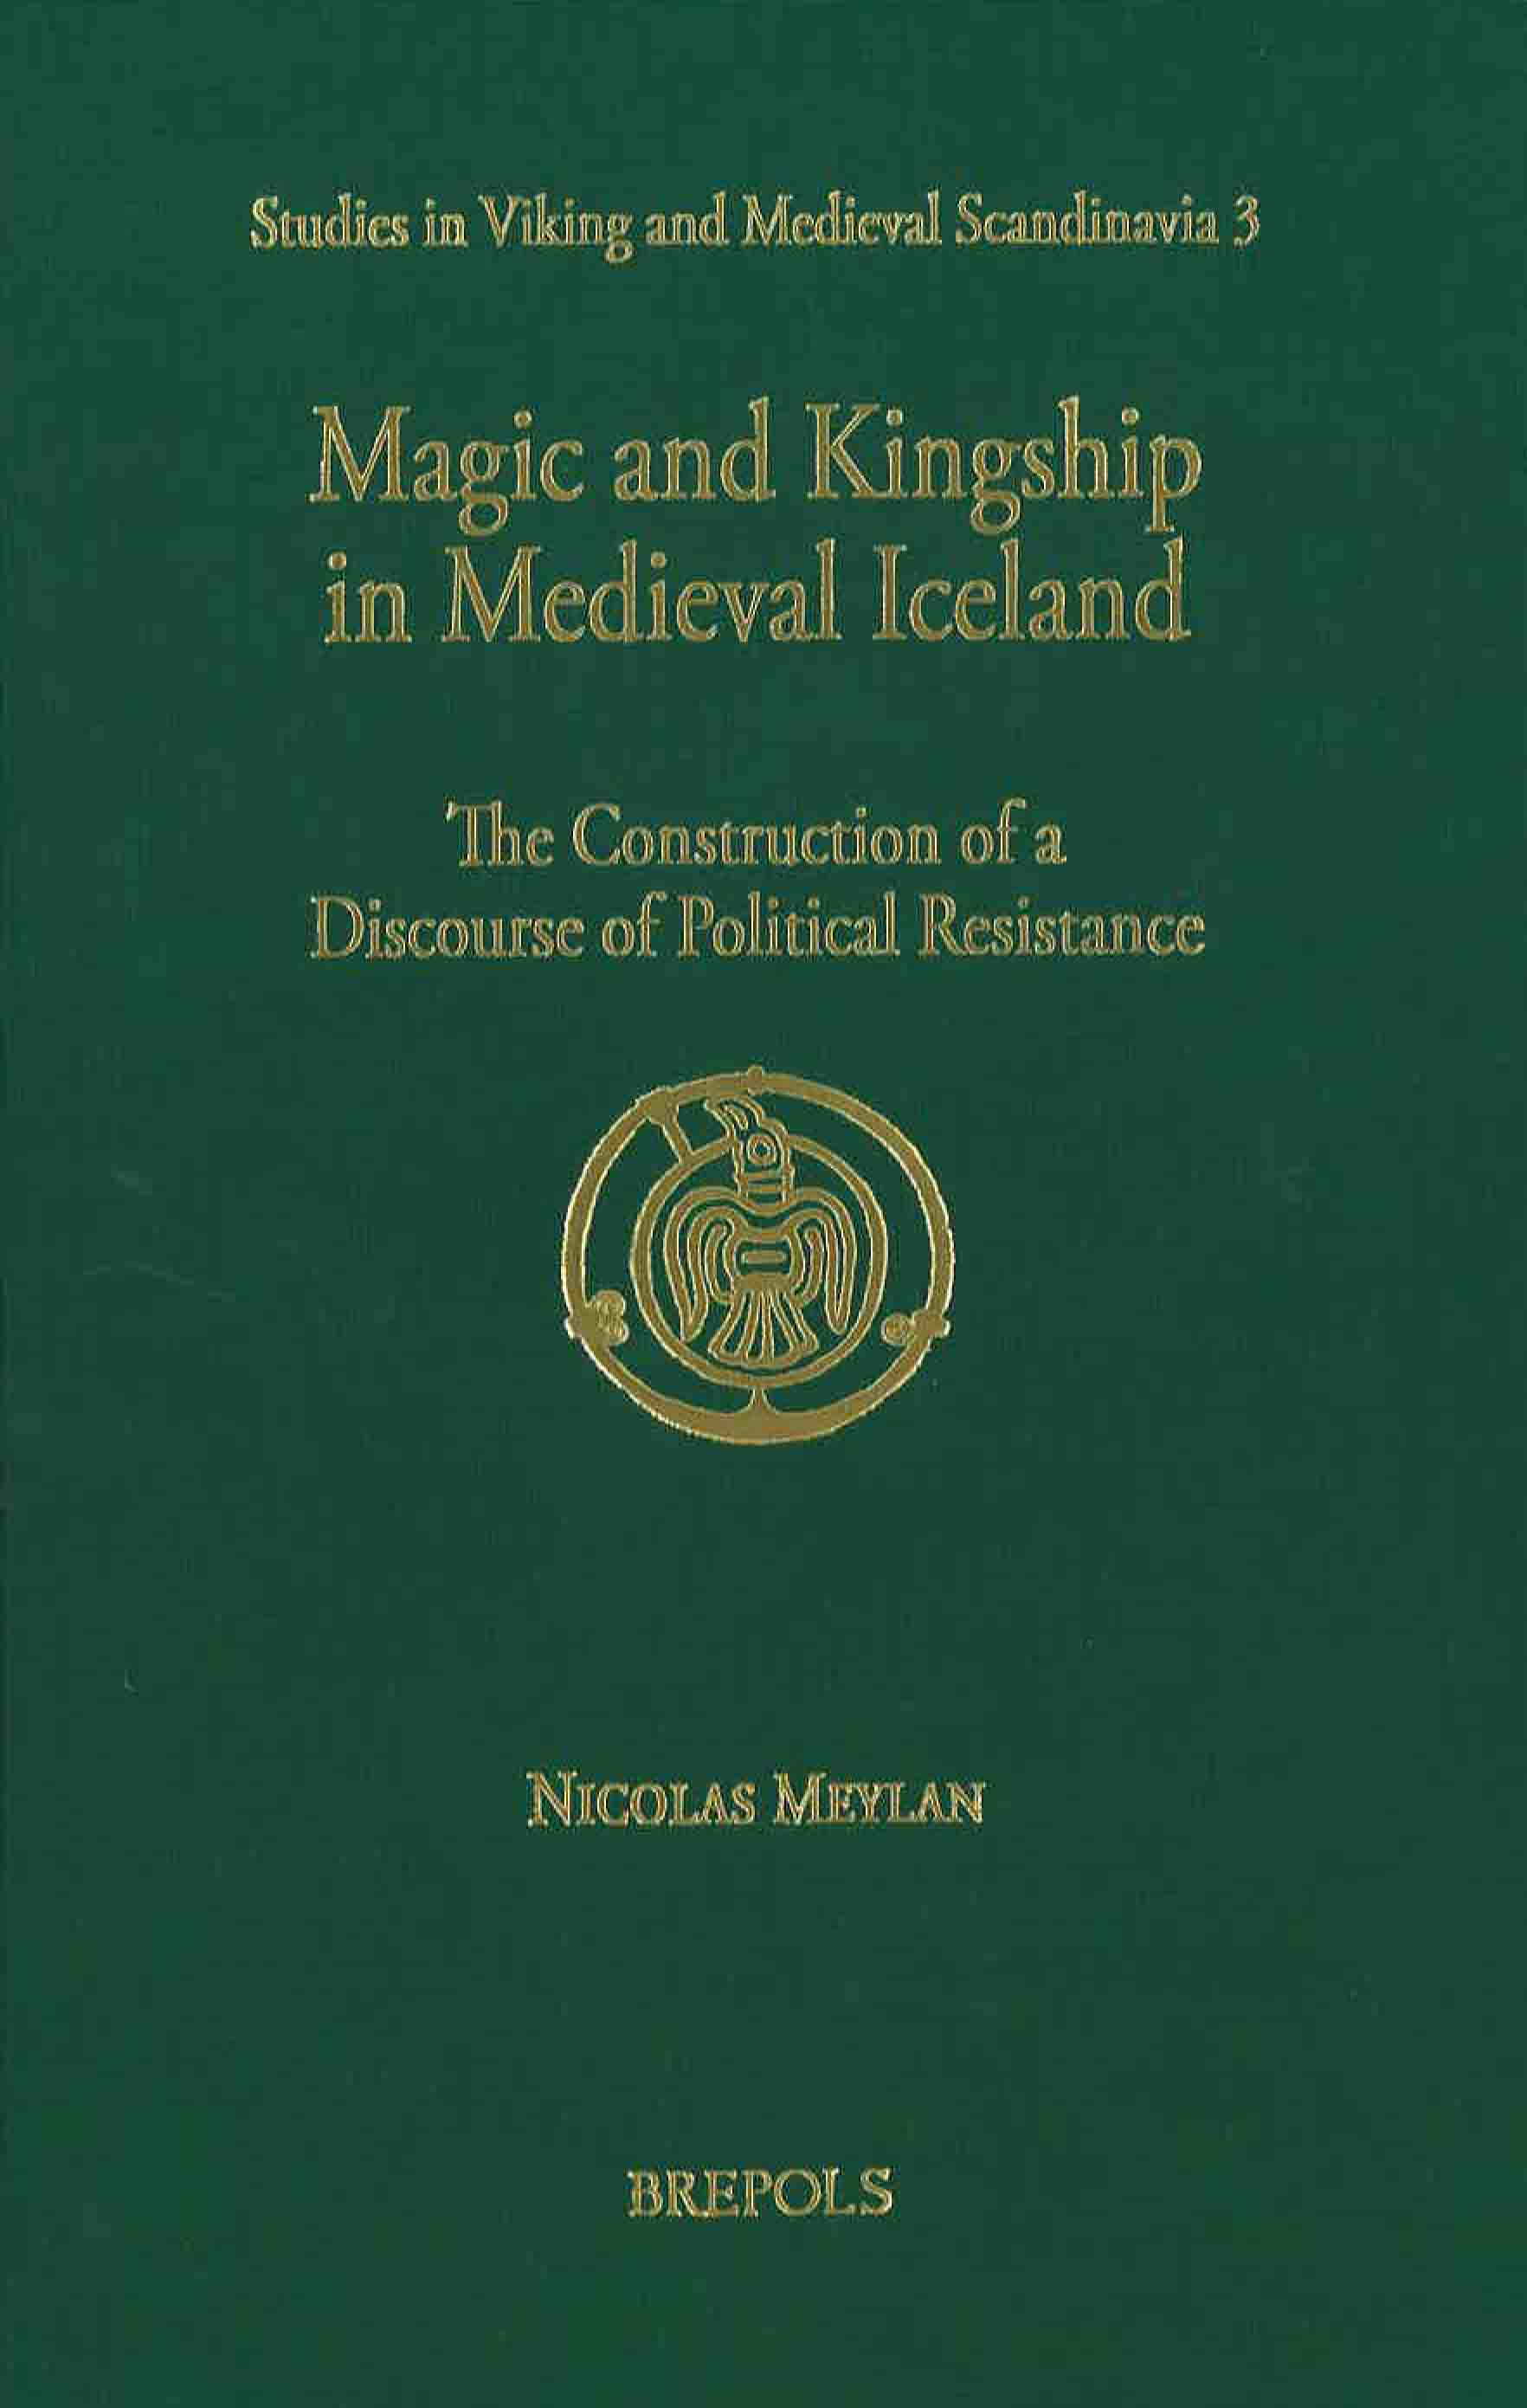 Nicolas Meylan, Magic and Kingship in Medieval Iceland : The Construction of a Discourse of Political Resistance